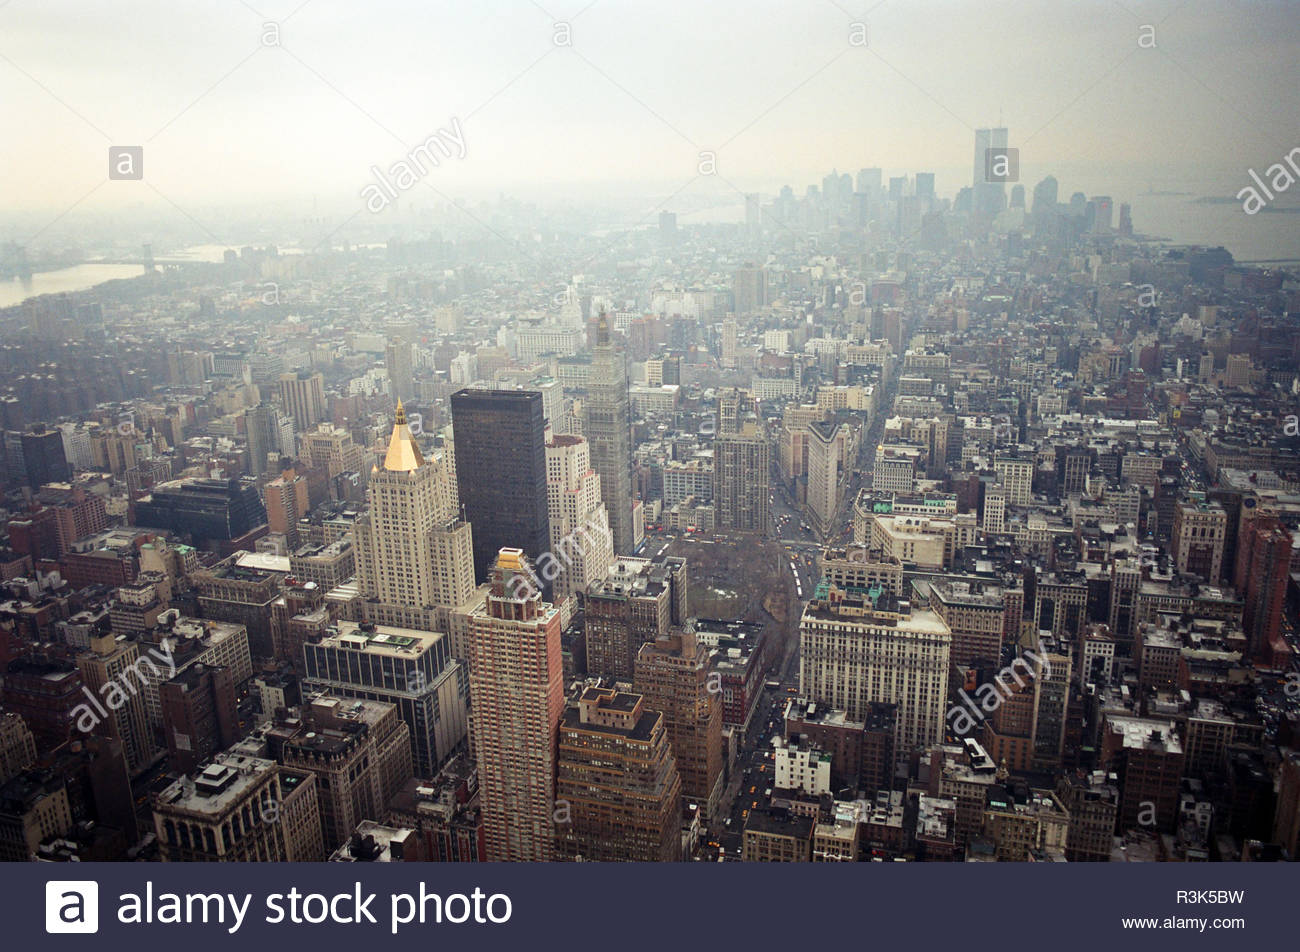 manhattan-viewed-from-the-empire-state-building-looking-south-the-twin-towers-of-the-world-trade-center-are-visible-new-york-usa-in-feb-2000-R3K5BW.jpg